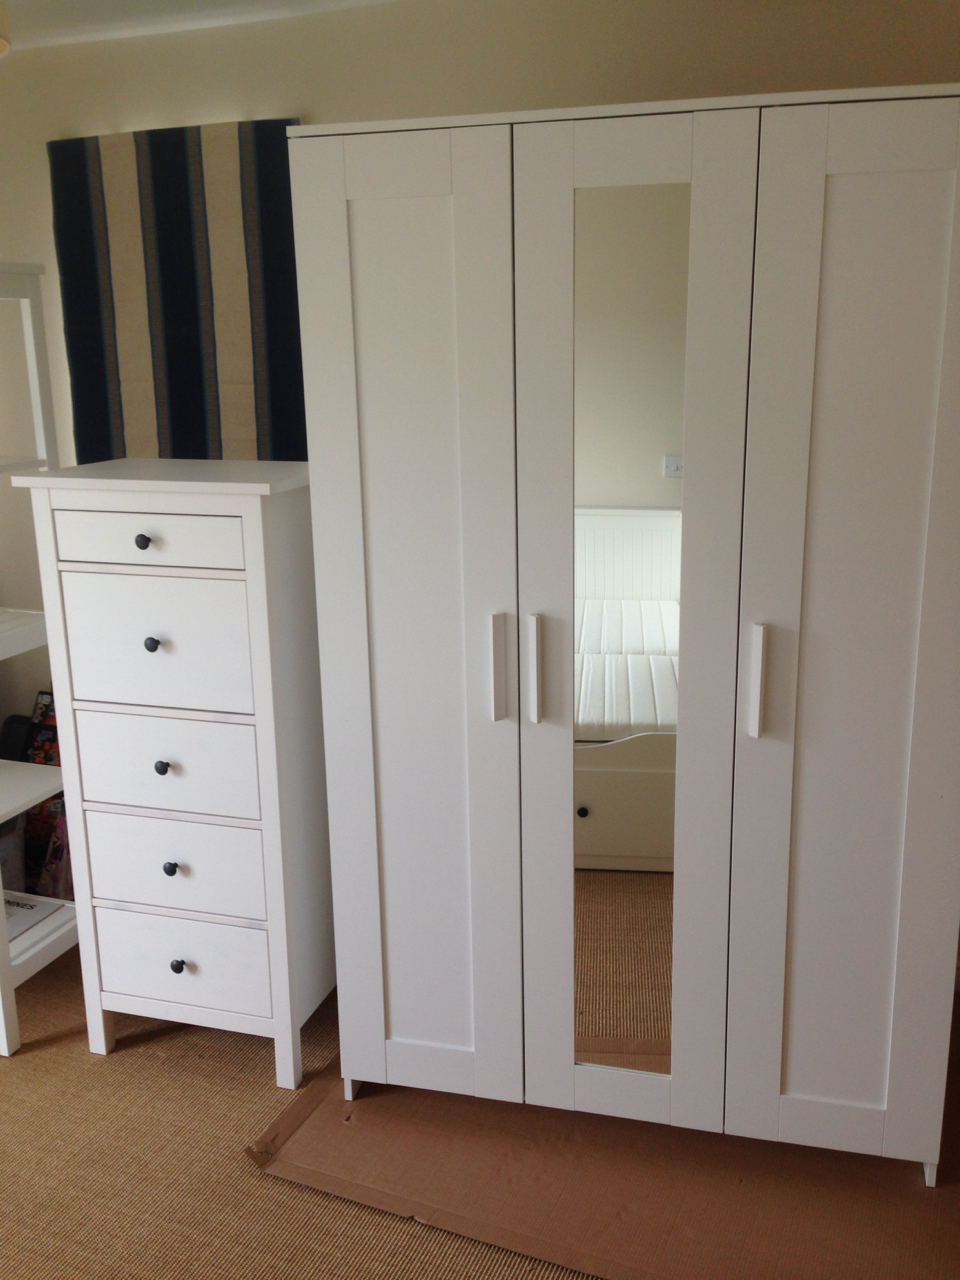 Ikea brimnes wardrobe and hemnes chest of drawers assembled by www.norwichflatpack.co.uk